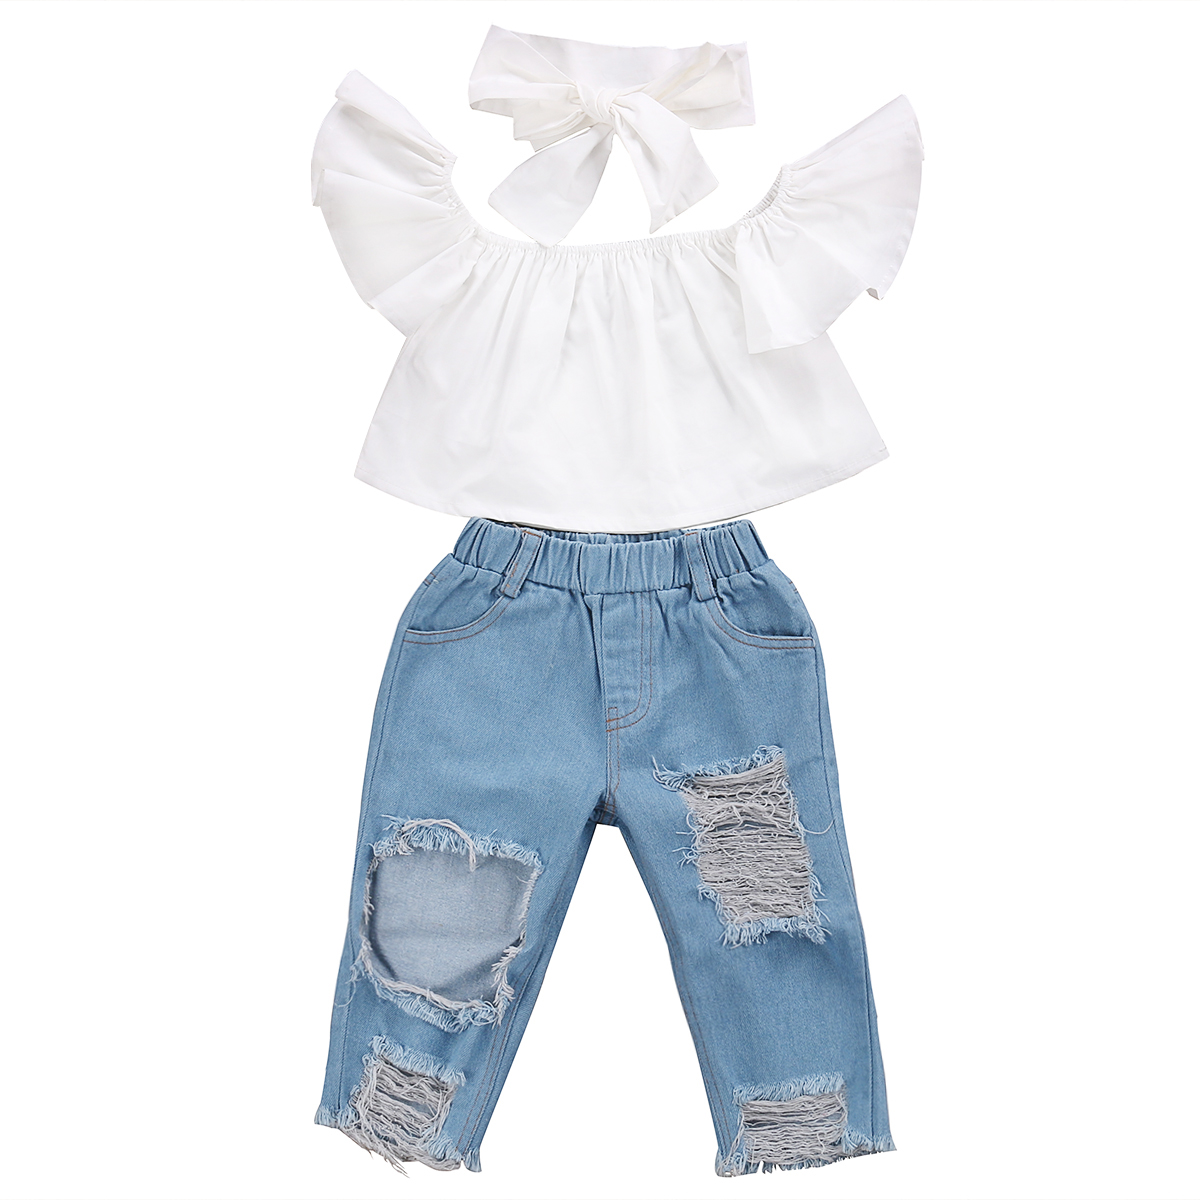 Toddler Girls Kids Clothes Sets Off Shoulder Tops Short Sleeve Denim Pants Jeans Headbands 3pcs Outfits Set Clothing girls tops cute pants outfit clothes newborn kids baby girl clothing sets summer off shoulder striped short sleeve 1 6t